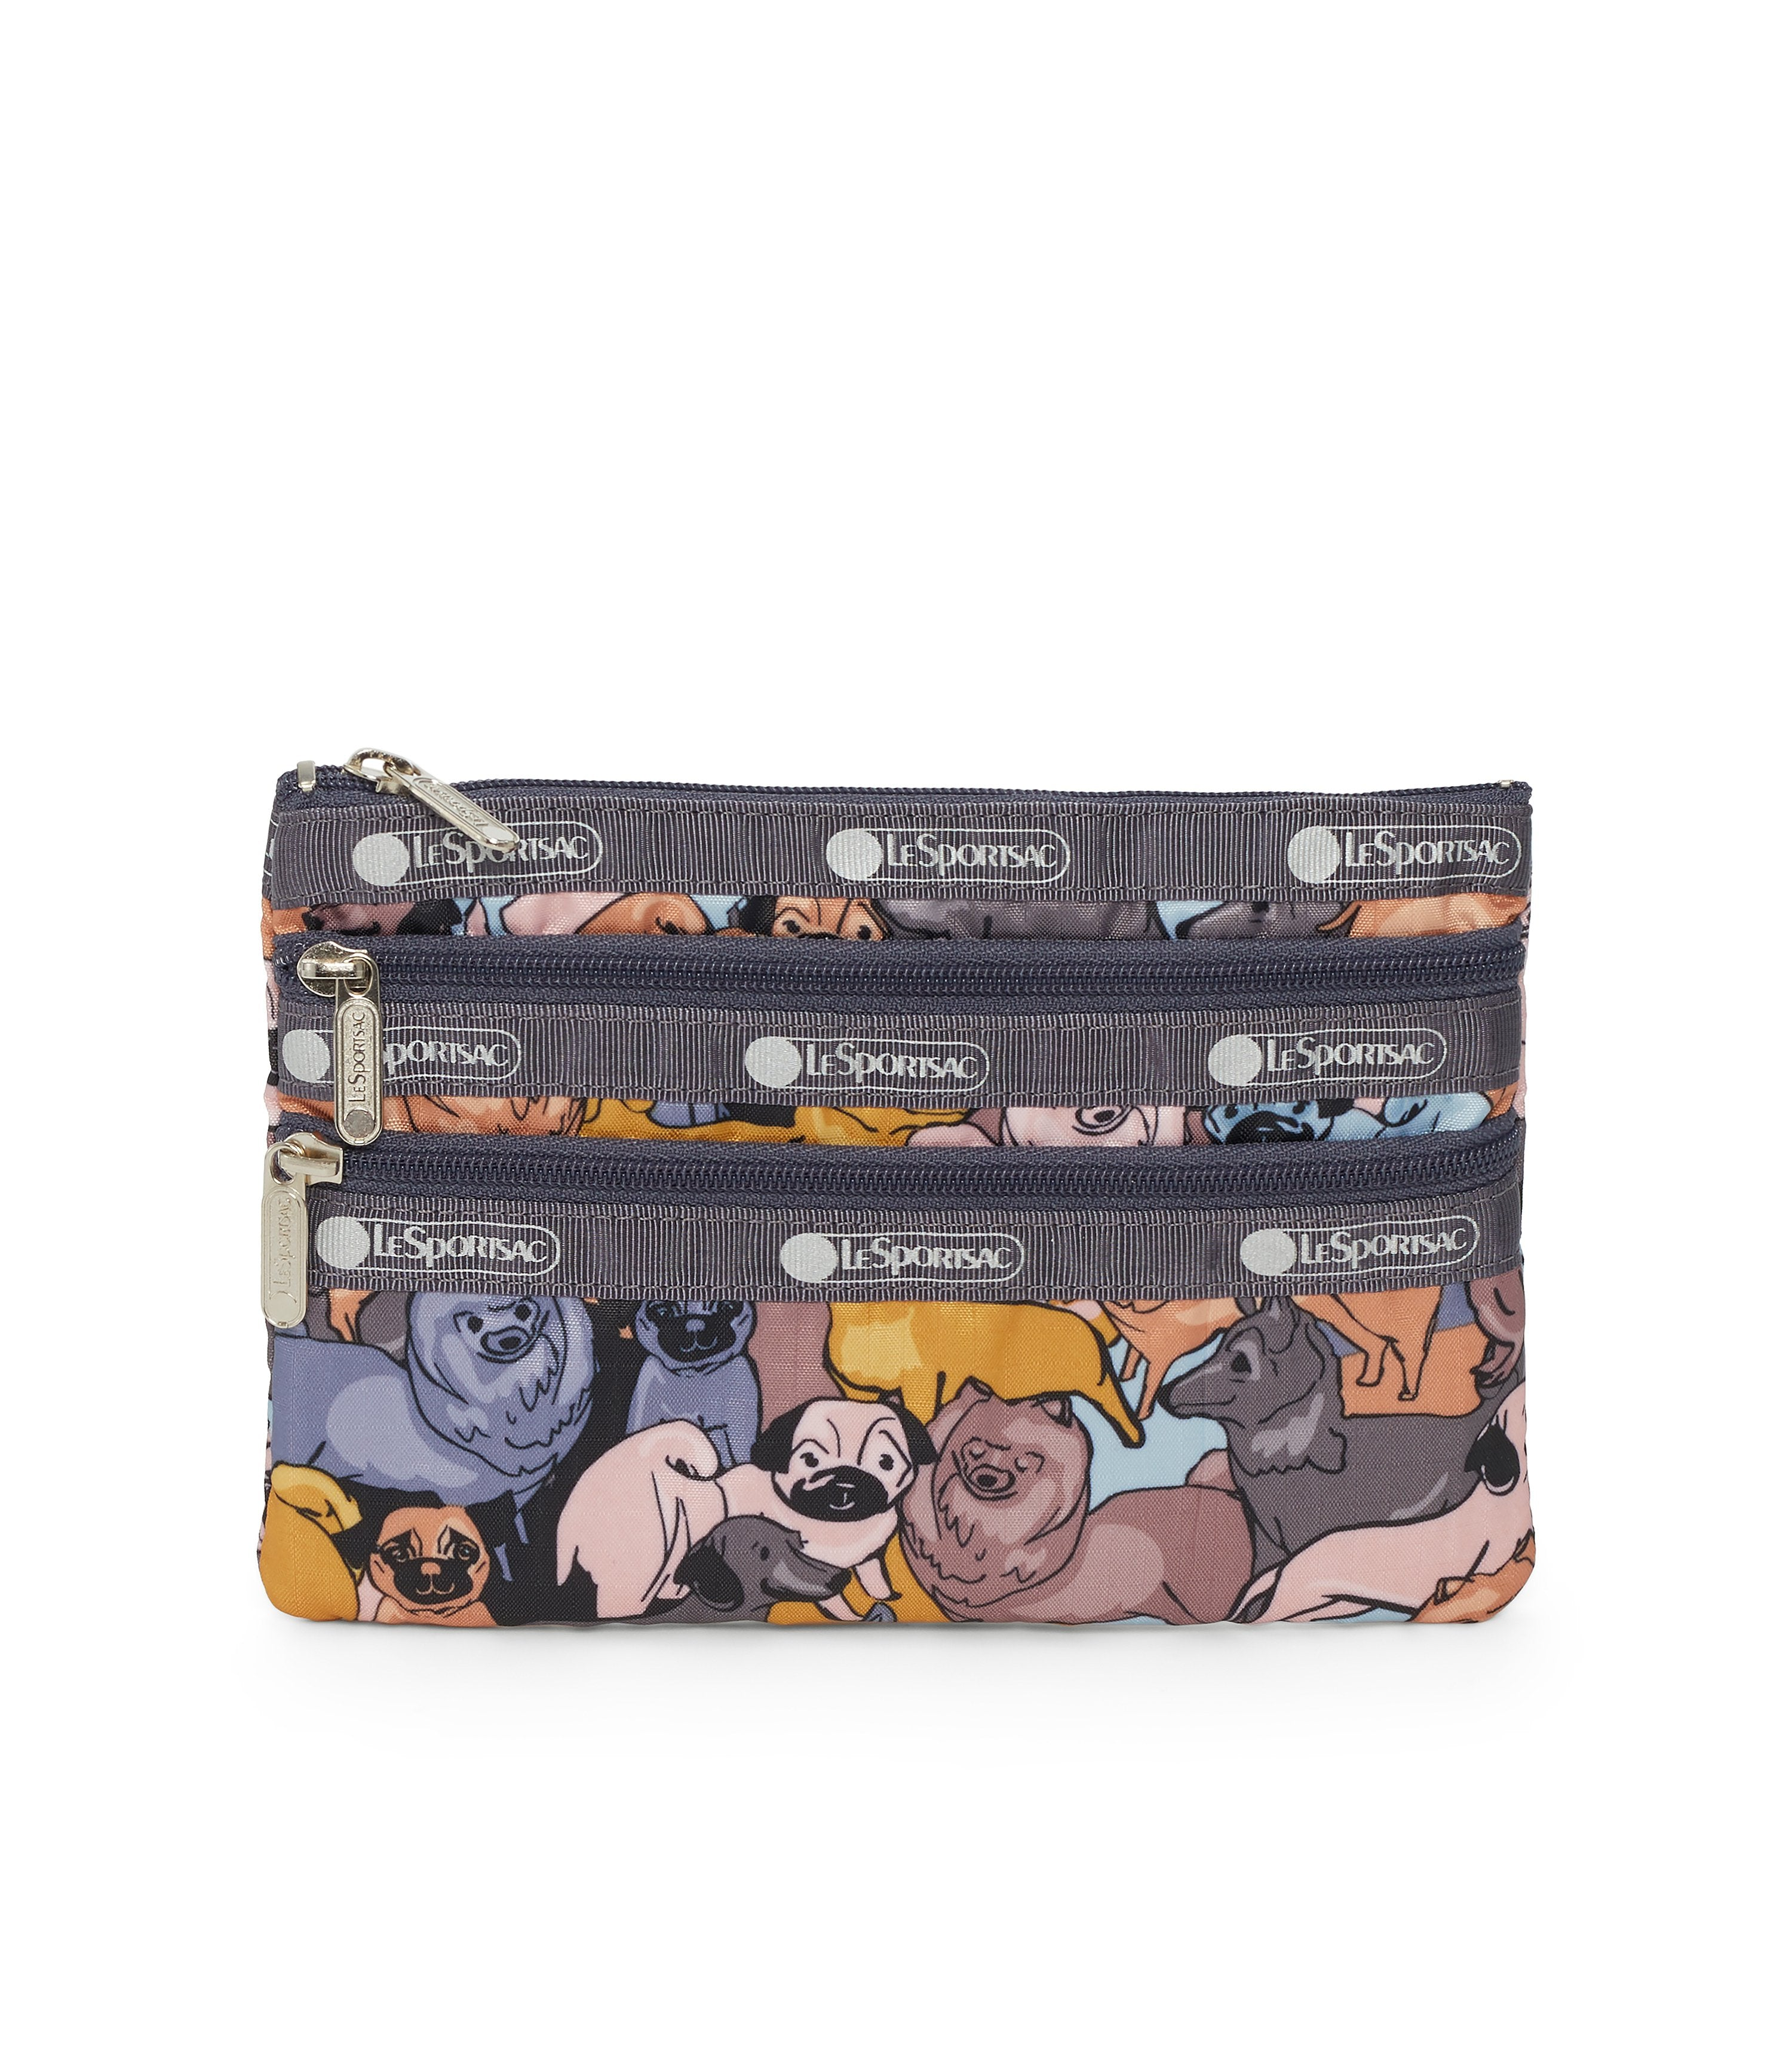 3-Zip Cosmetic, Accessories and Cosmetic Bag, LeSportsac, Kon and Friends print